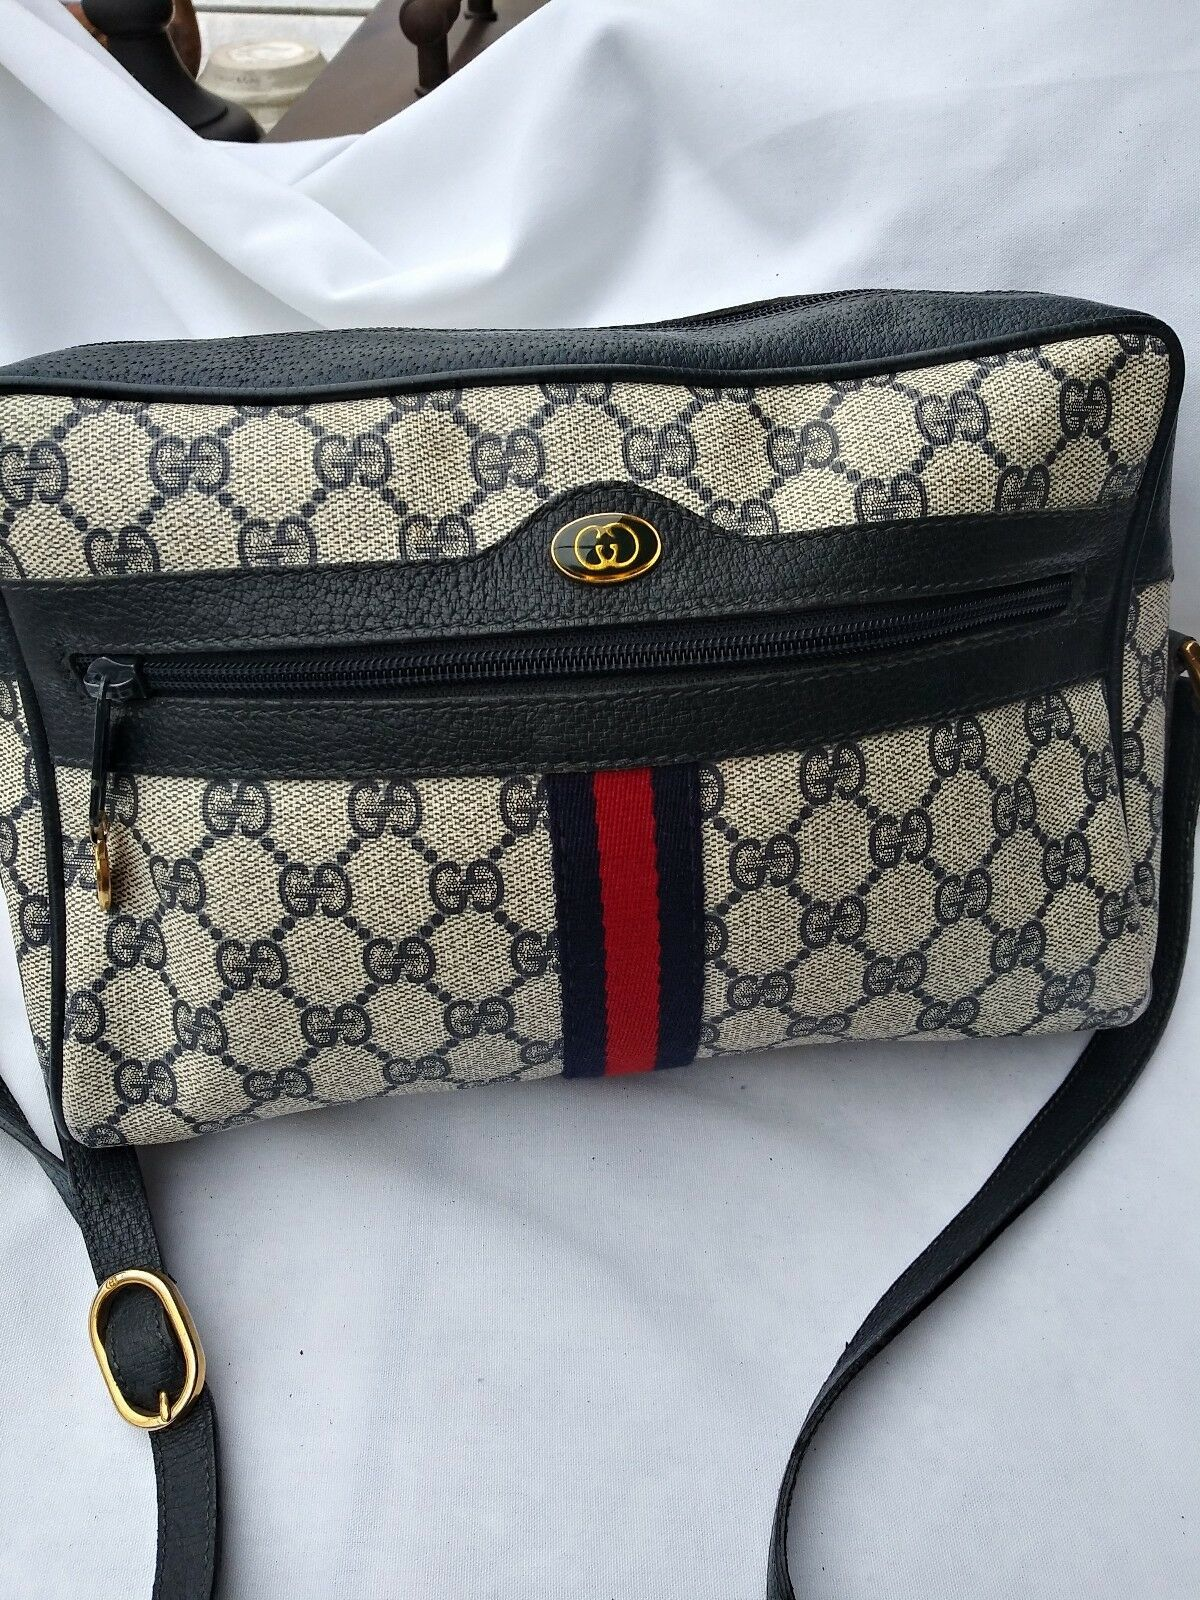 df7baaa4fc3e3 FORSALE Vintage gucci crossbody bag. Made in Italy. Blue. Excellent ...